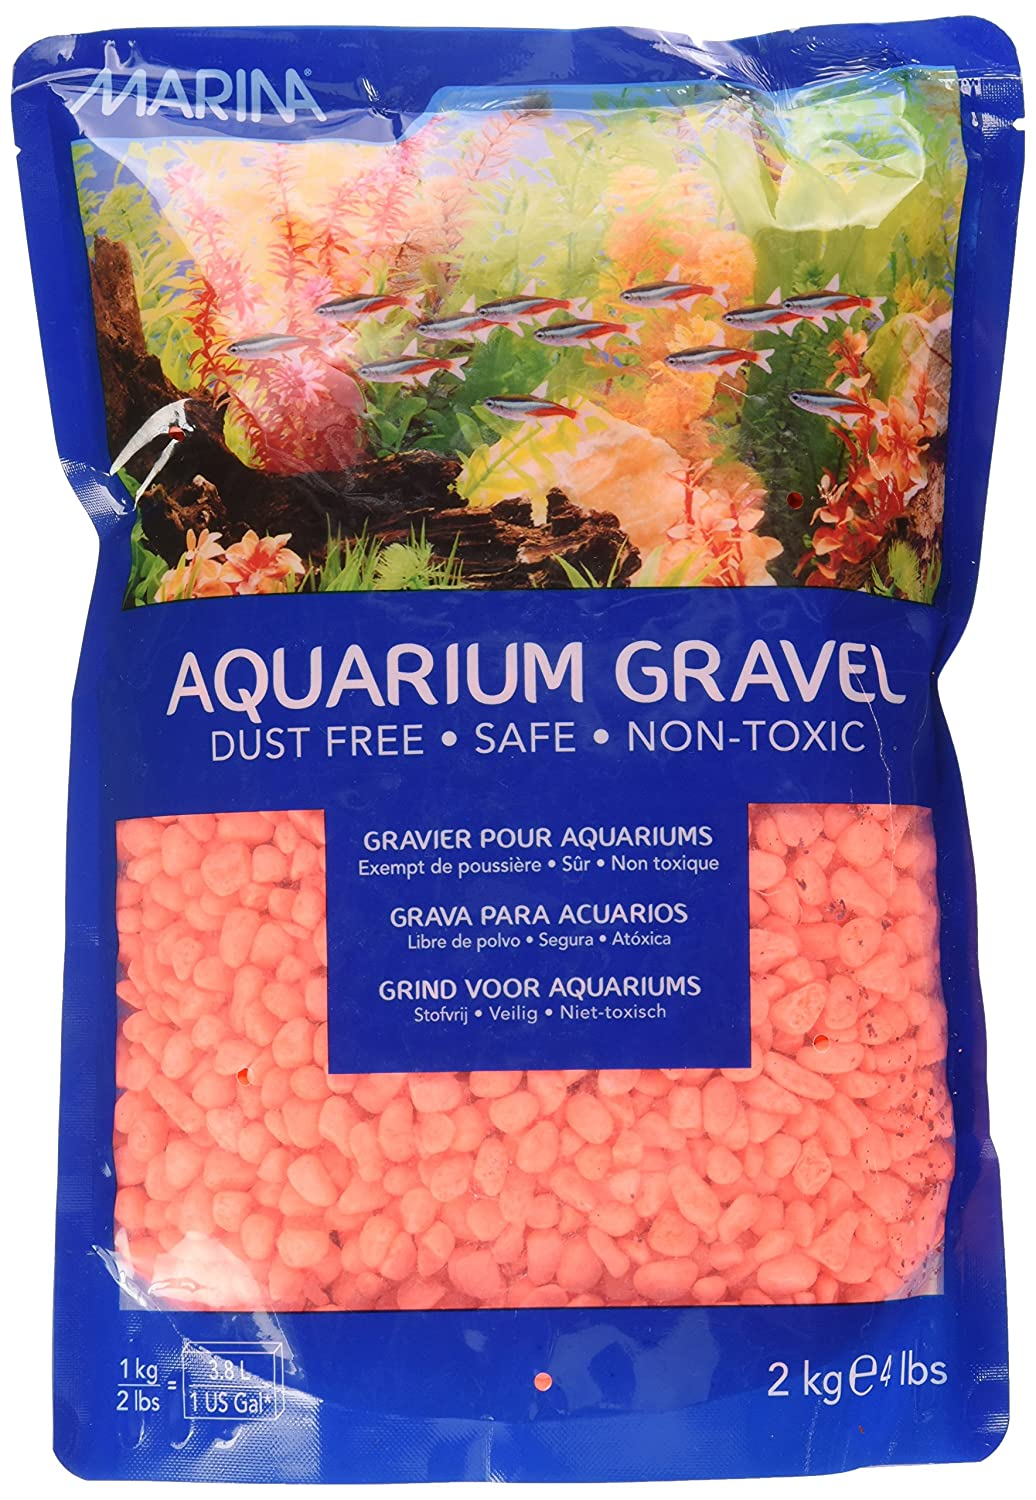 Marina Décoration Gravier pour Aquariophilie Orange 2 kg 12464